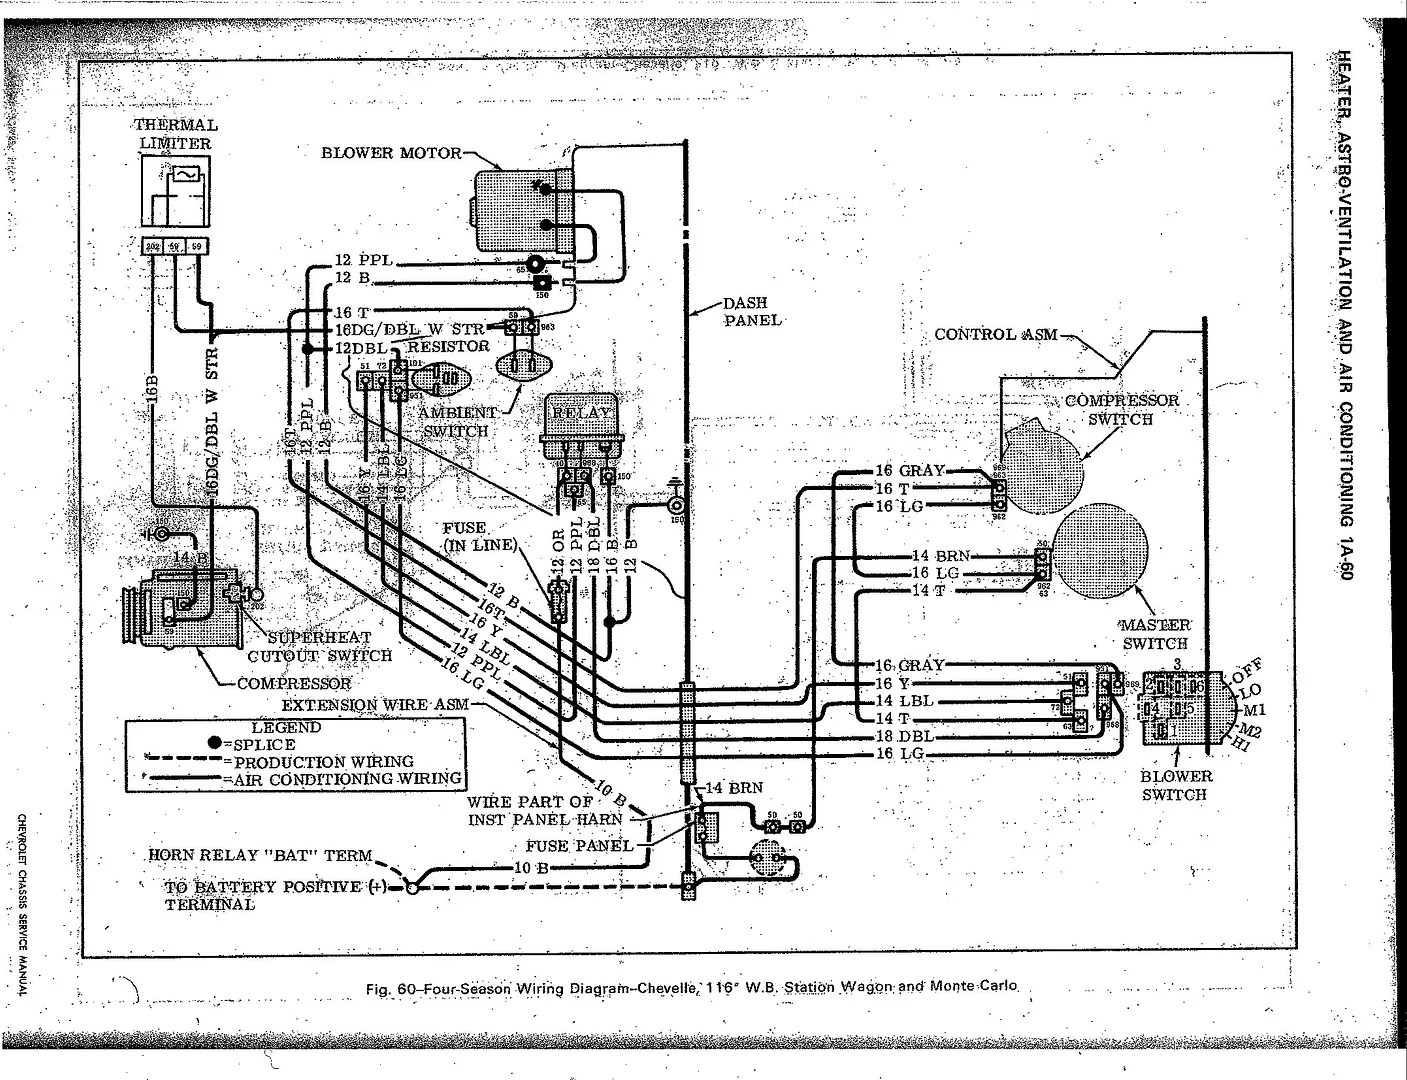 1972 chevy chevelle wiring diagram wilkinson pickups blower motor 72 39